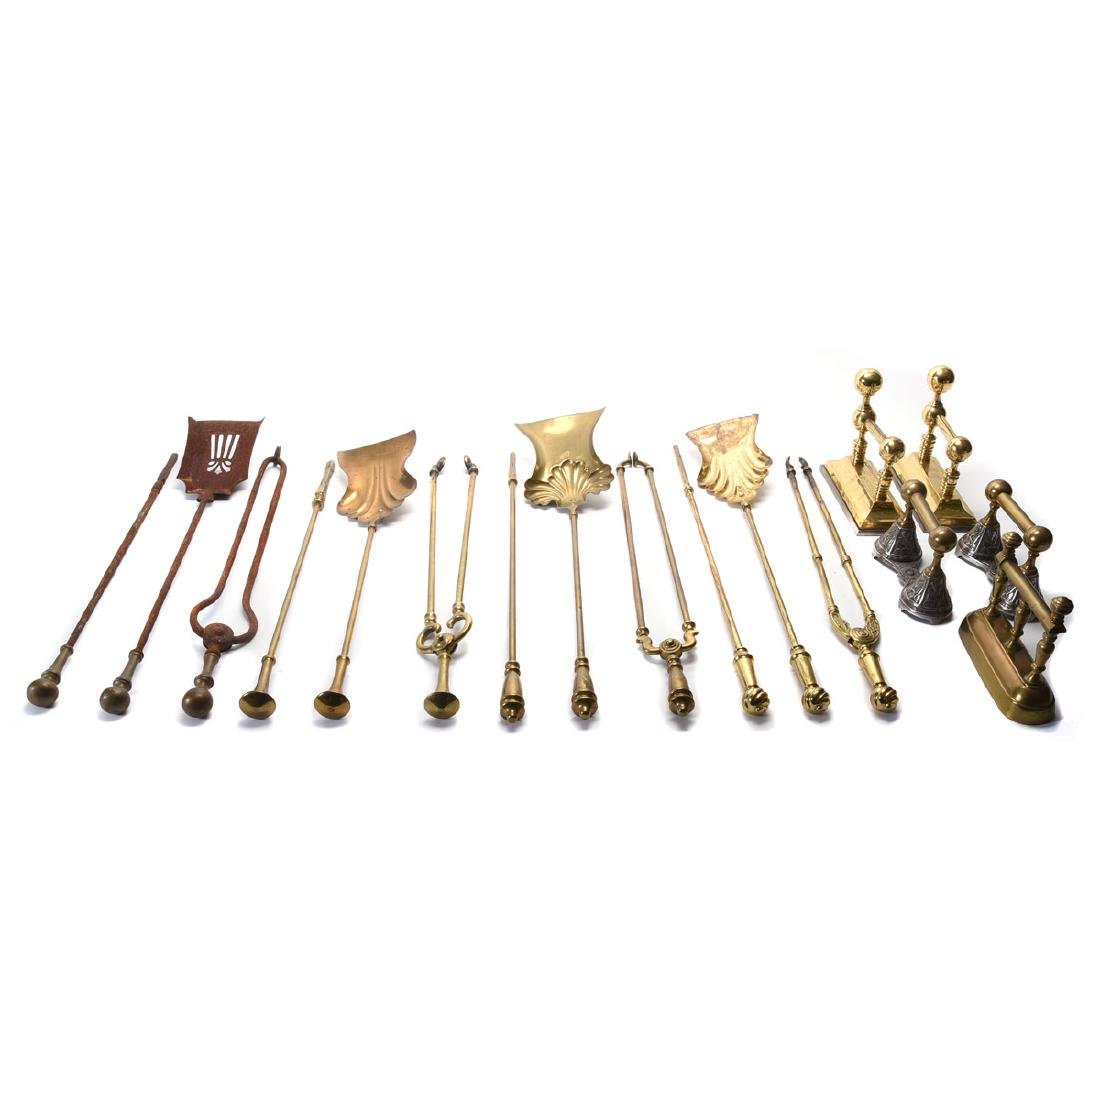 Large group of 18th/19th century fire tools (1979)